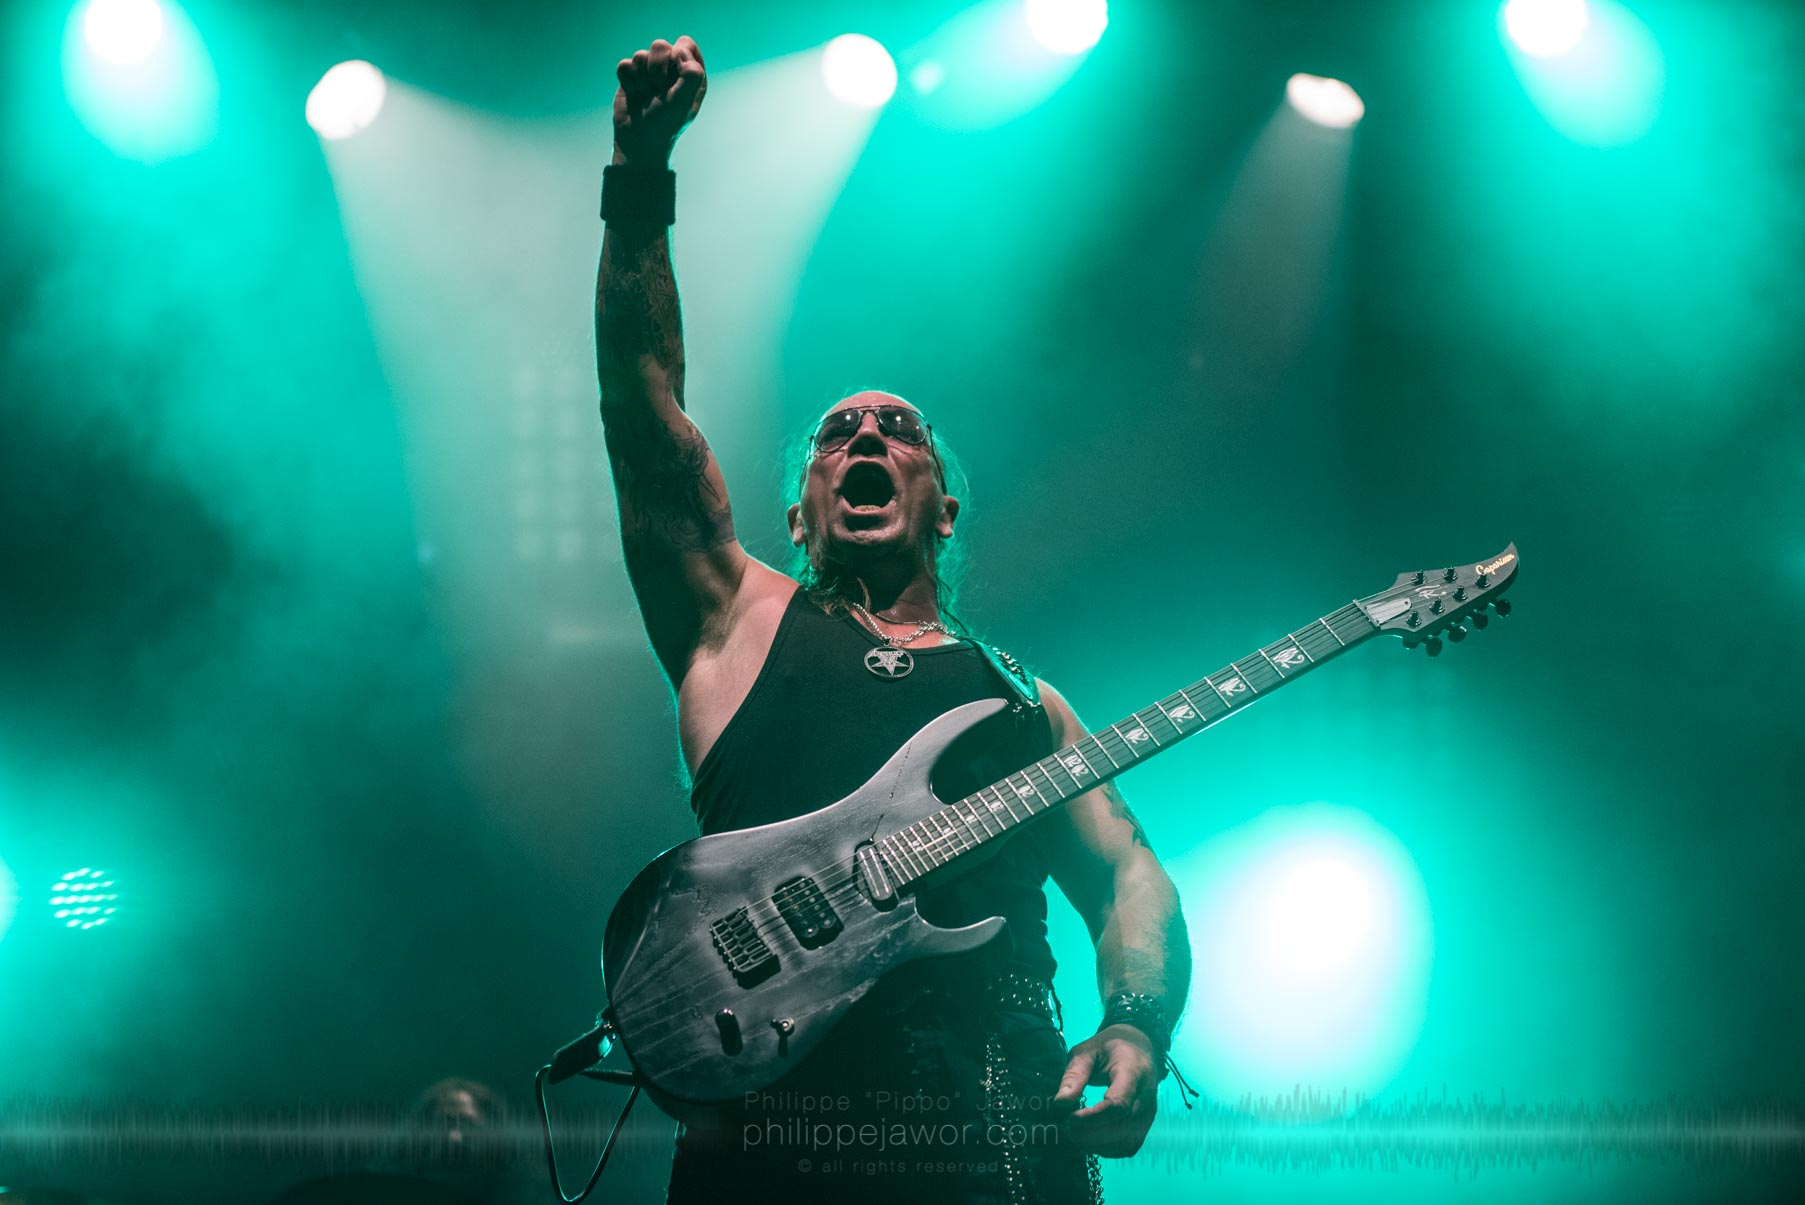 The British heavy metal band Venom Inc. live at Sylak Open Air festival, Saint Maurice de Gourdans, France, August 2017.  On assignment for Metal Obs' Magazine All rights reserved.